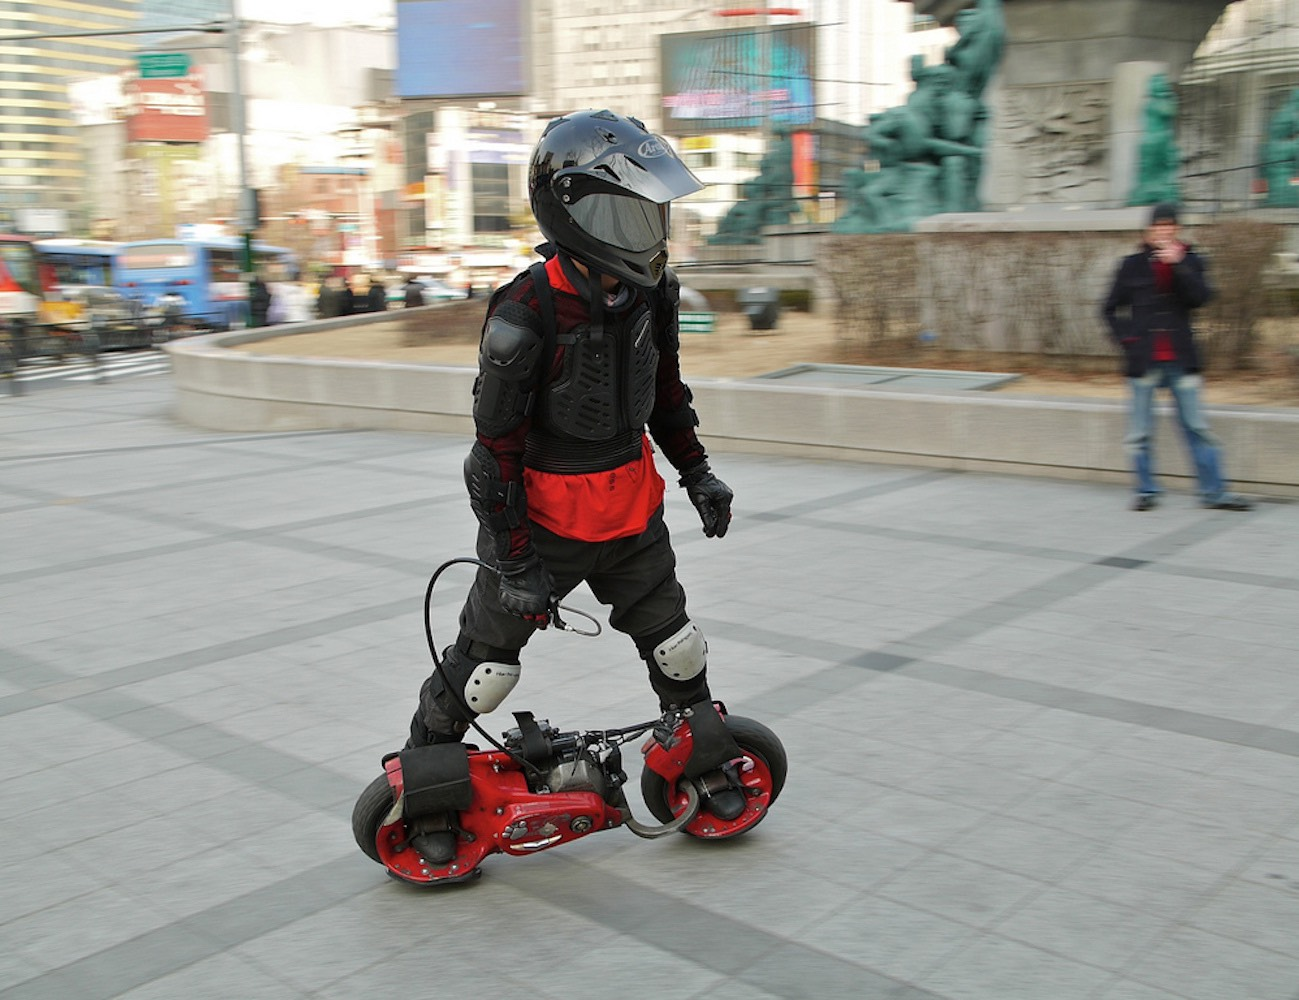 Wheelman+50cc+Gas+Skateboard